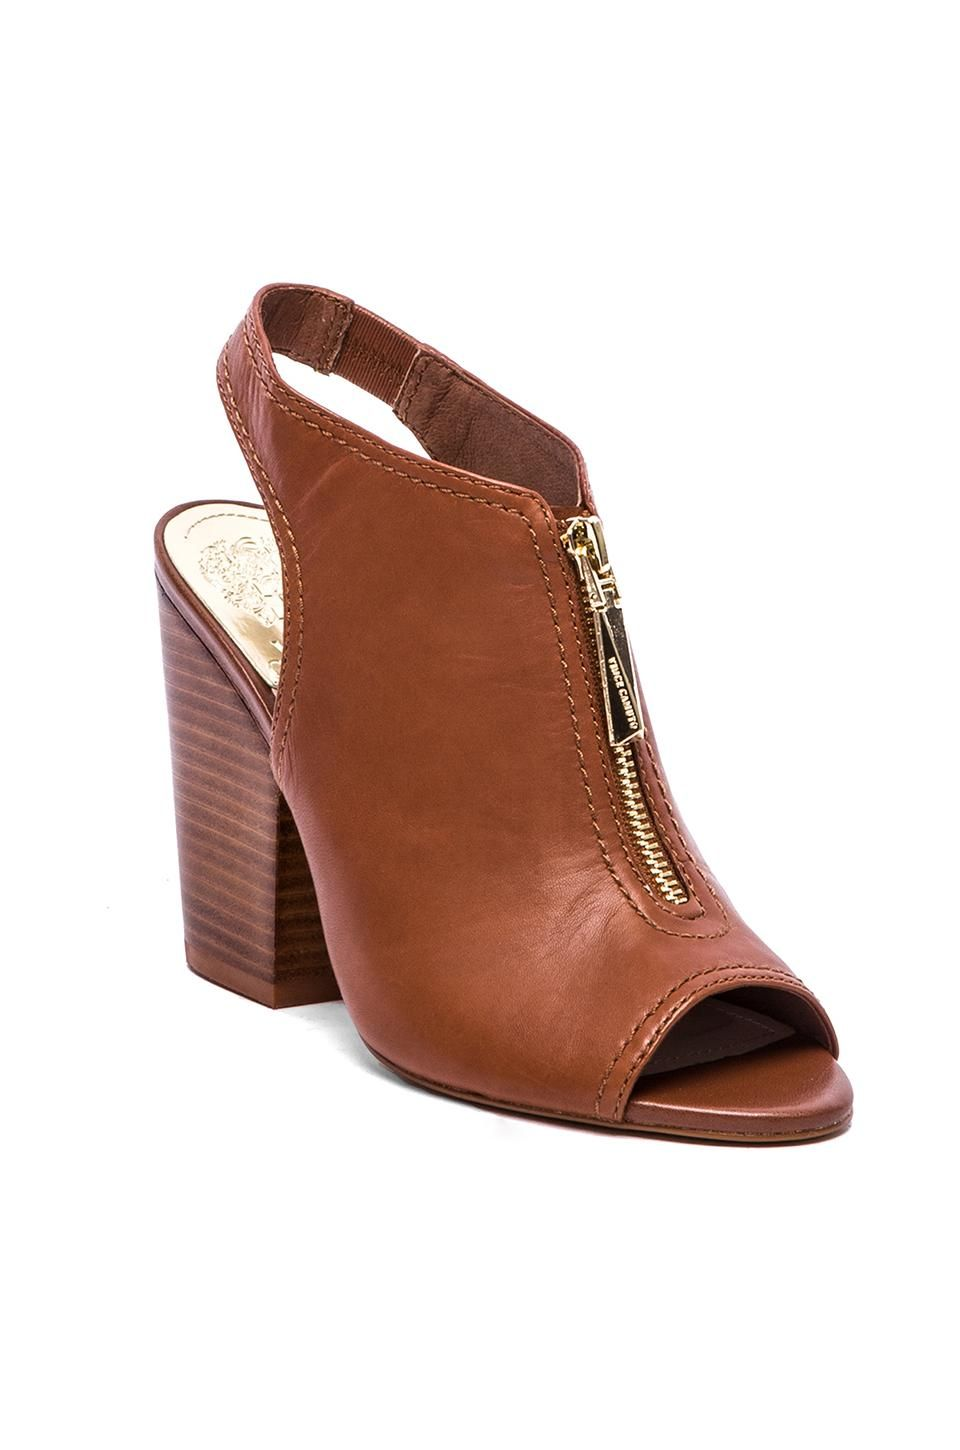 Cute camel booties with some 70's flare!